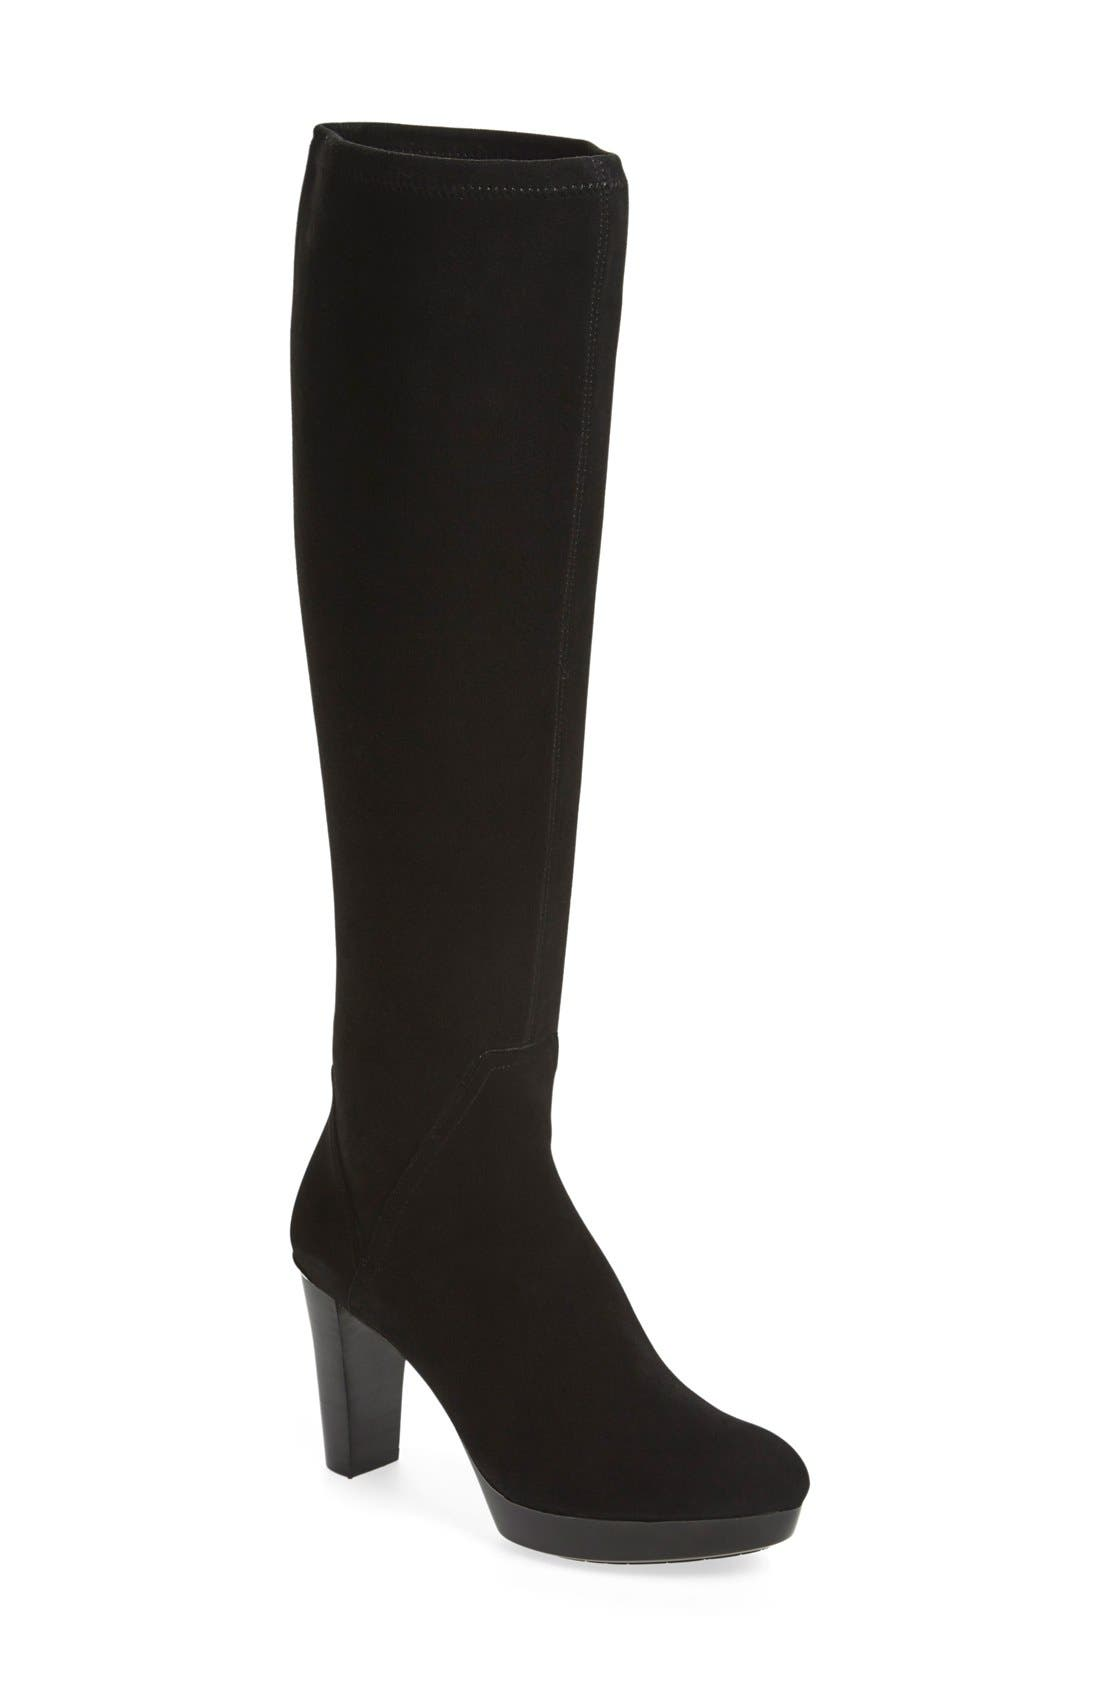 Alternate Image 1 Selected - Donald J Pliner 'Echoe' Stretch Suede Tall Boot (Women)